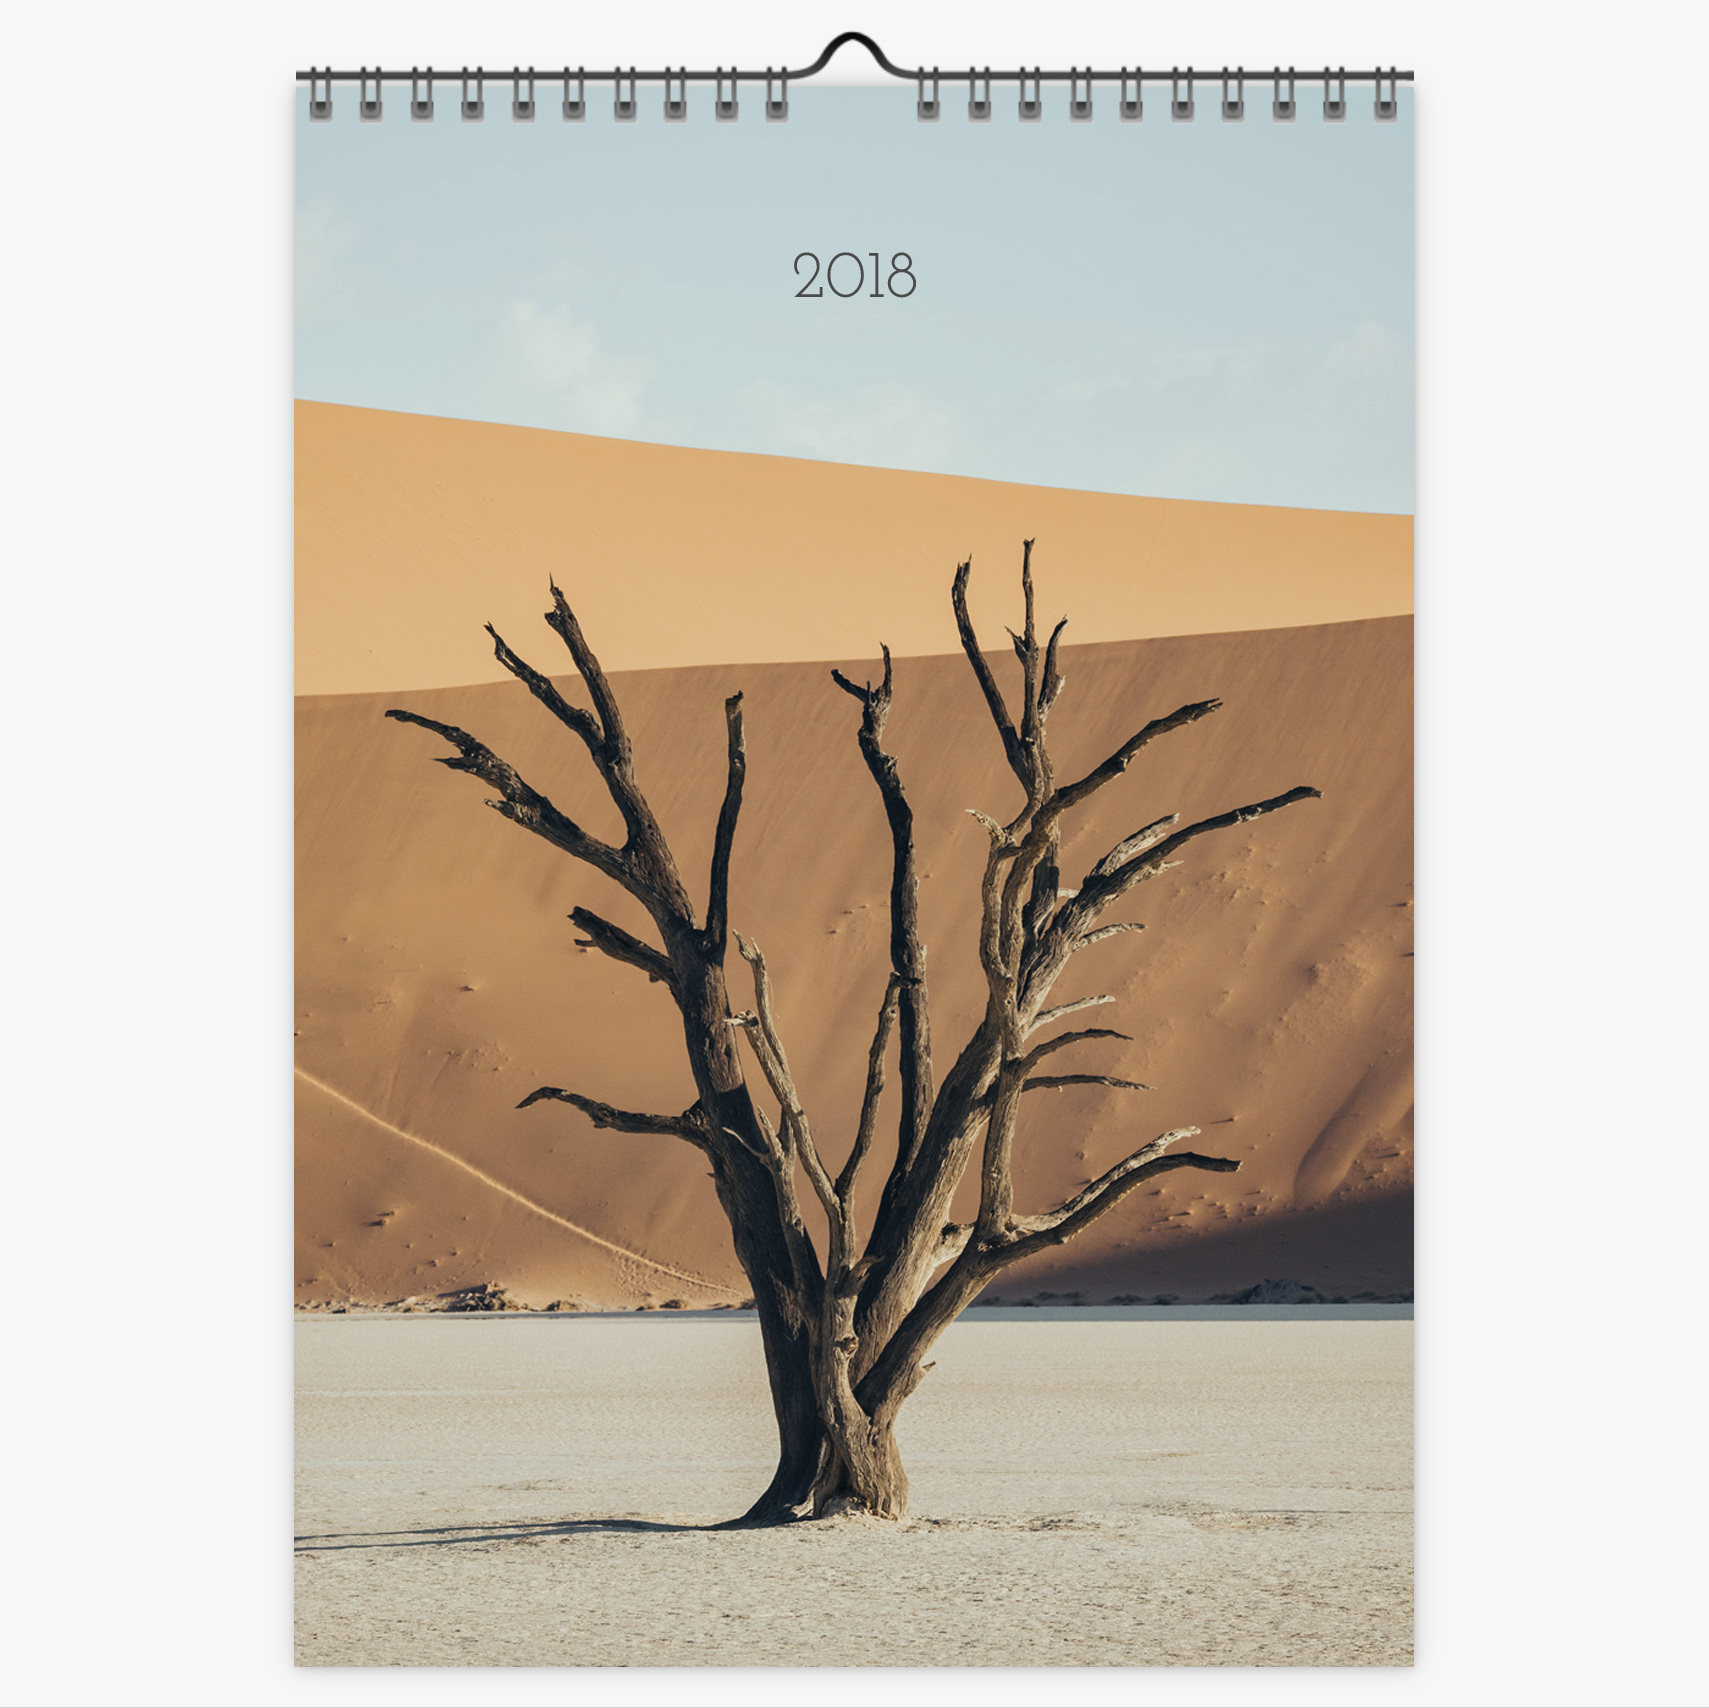 Chris Eyre-Walker Photography 2018 Calendar Cover